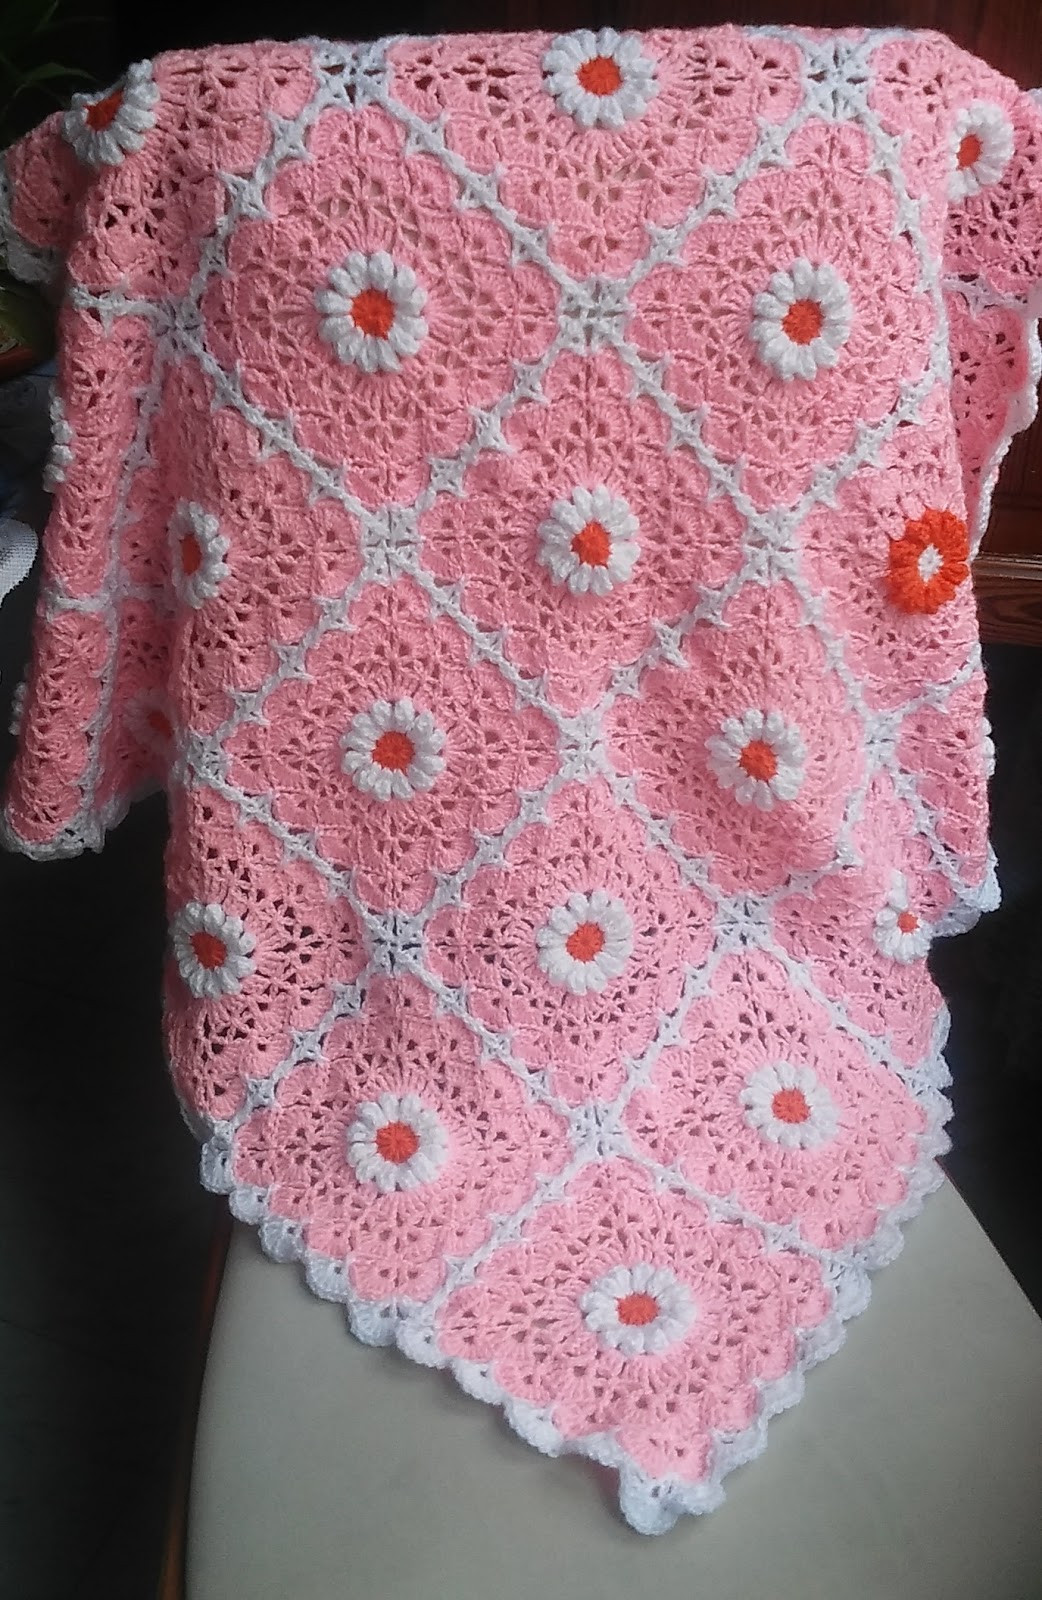 Crochet toddler Blanket Awesome 12 Free and Cute Baby Blanket Crochet Patterns Of Amazing 41 Ideas Crochet toddler Blanket